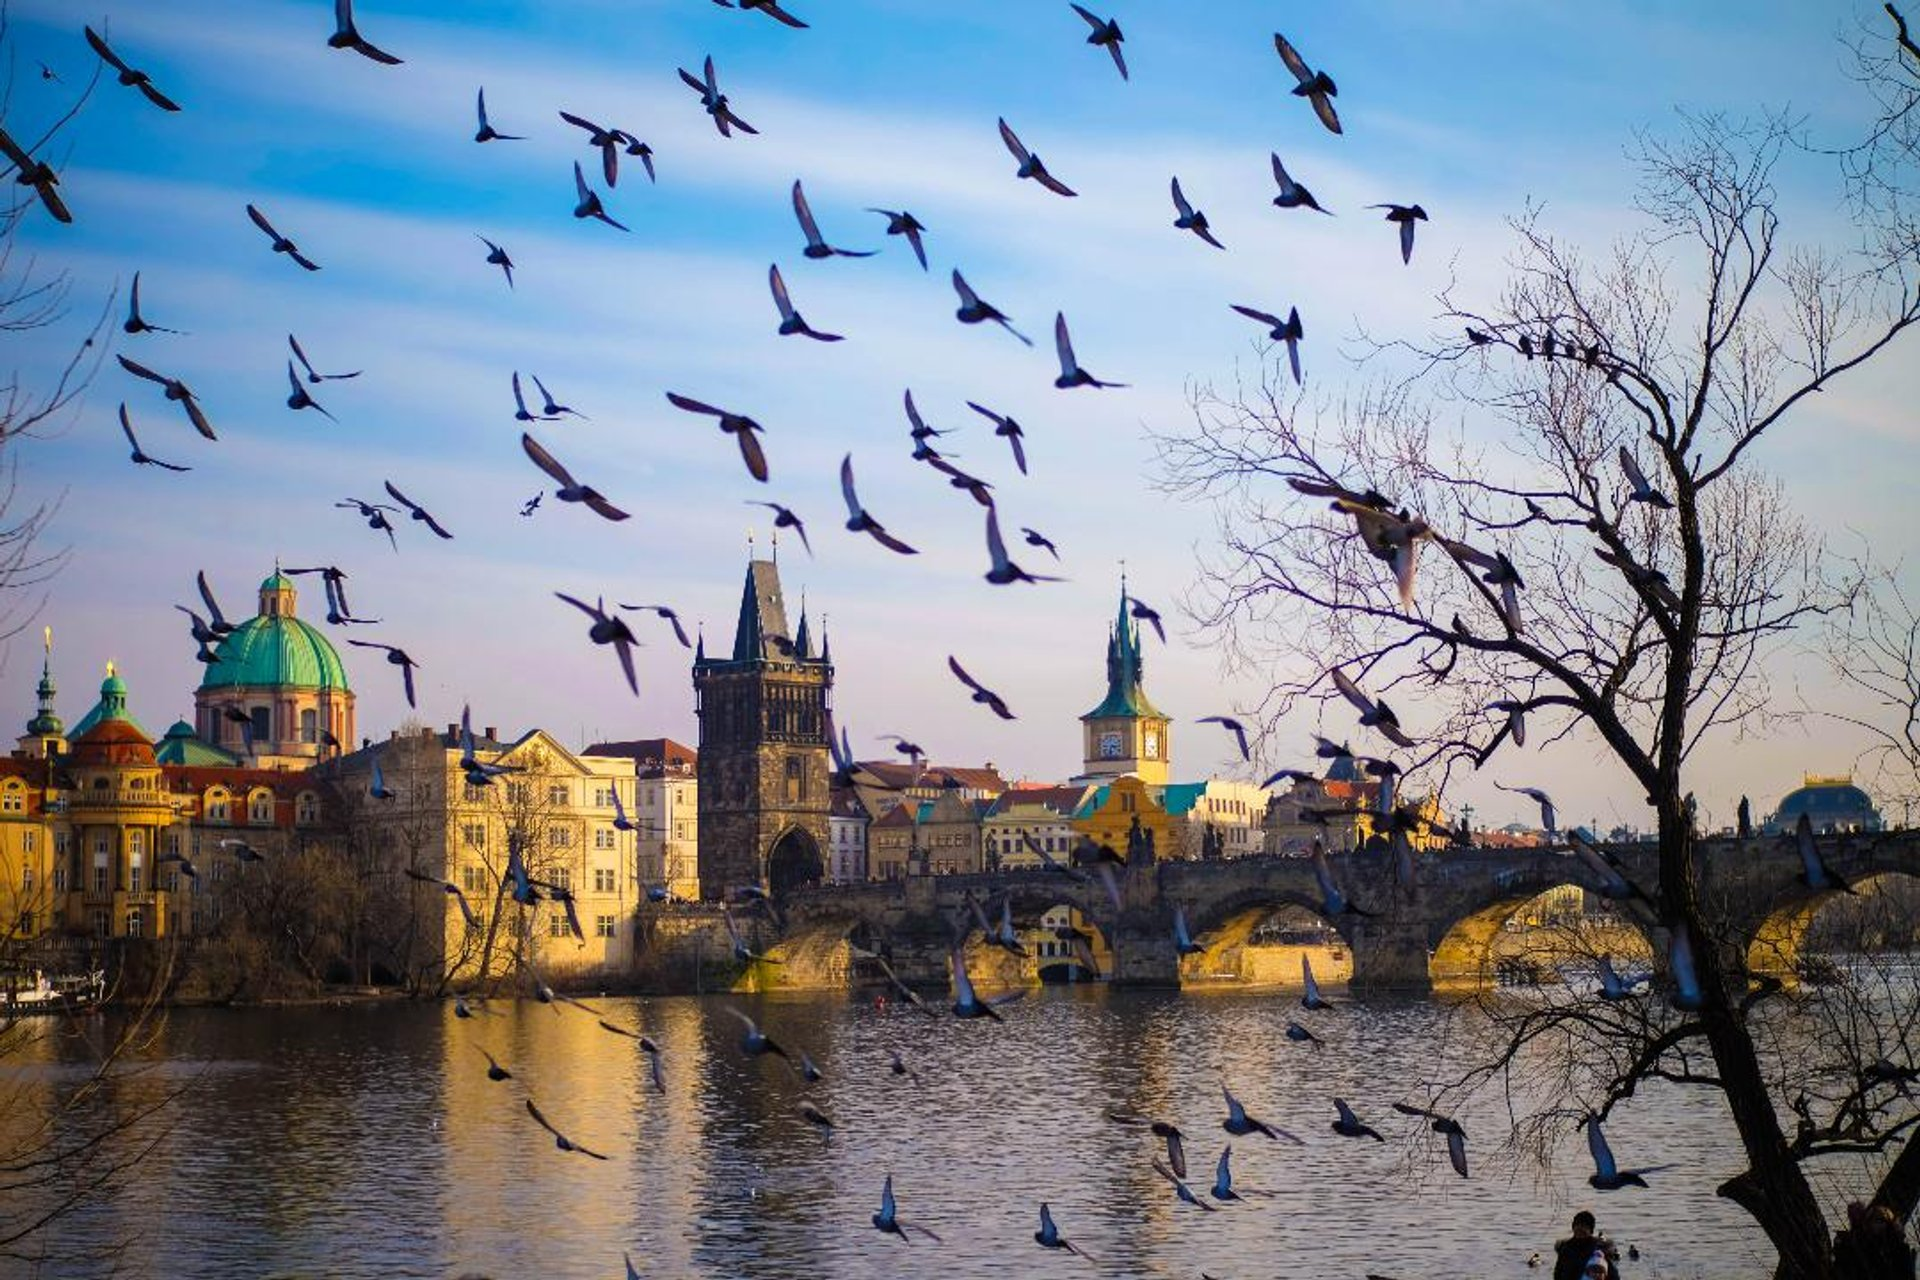 Birdwatching in Czech Republic - Best Season 2019